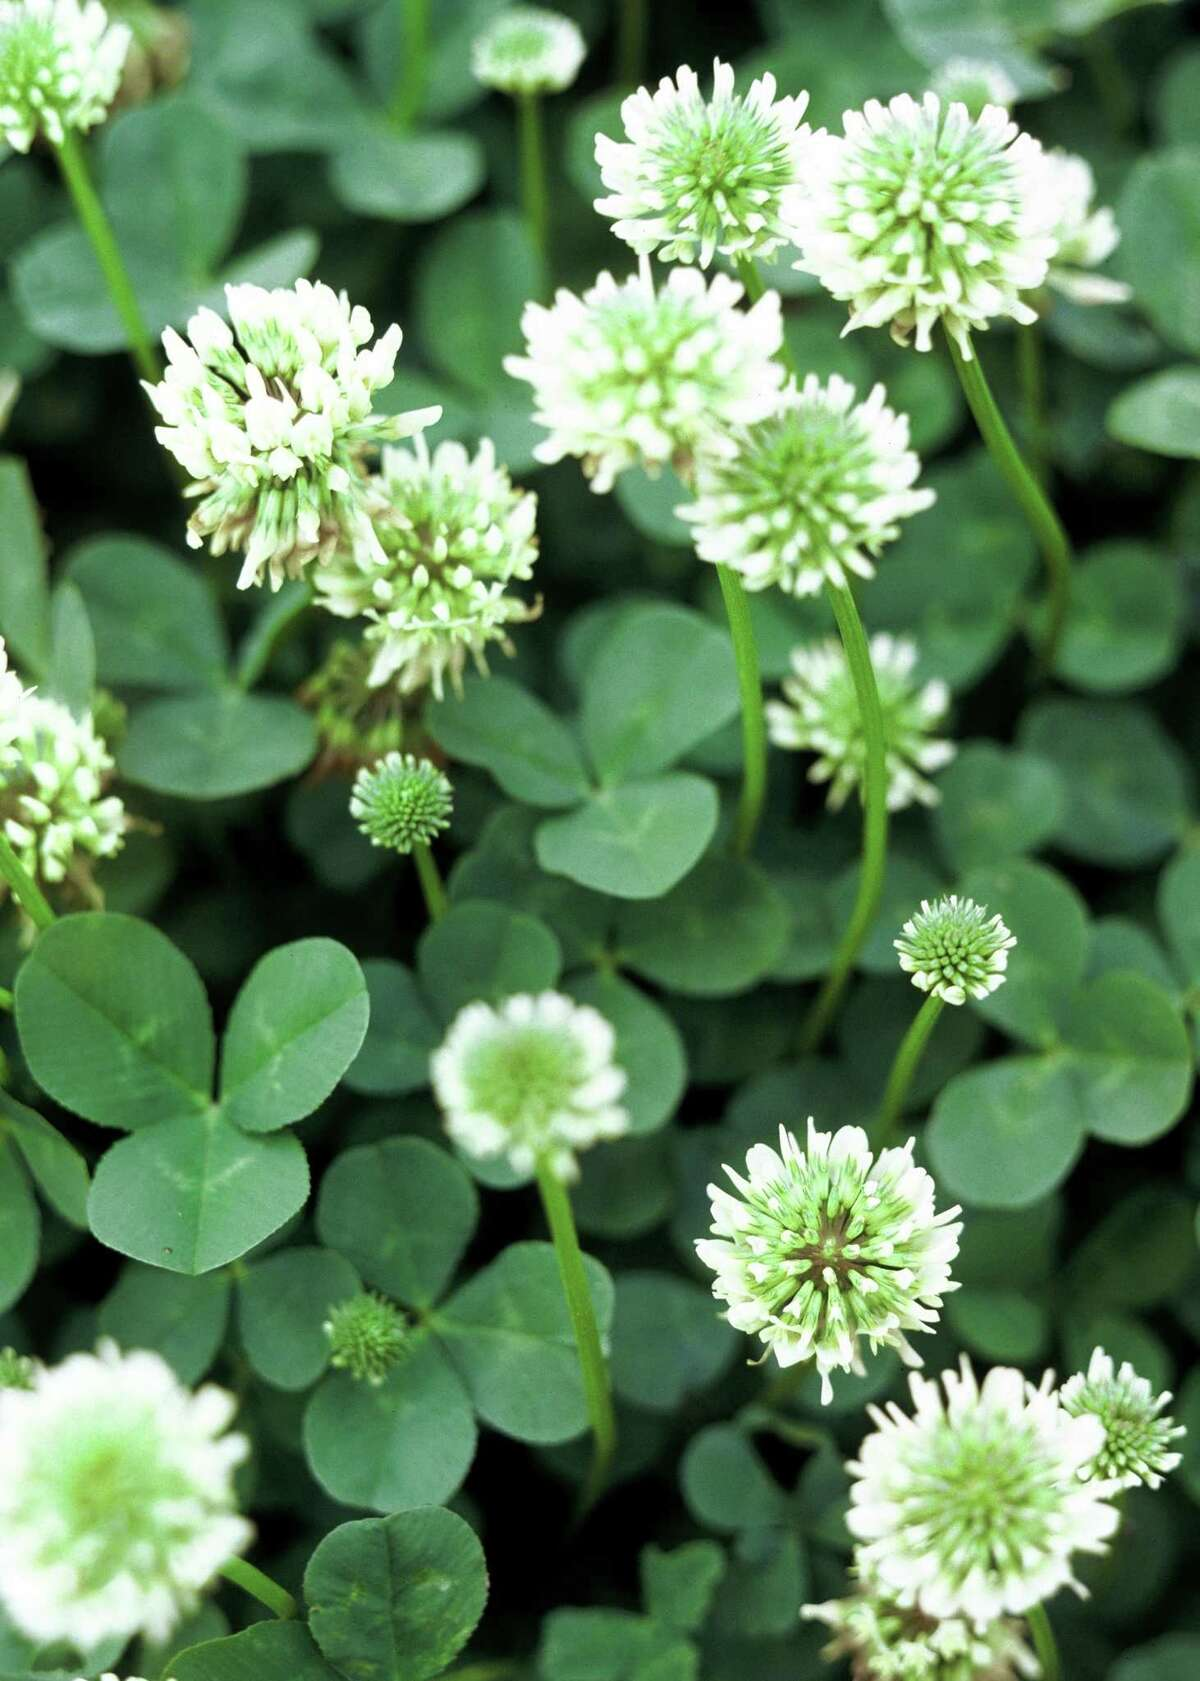 White clover is a native species favored by honey bees that can find a place in the residential landscape.